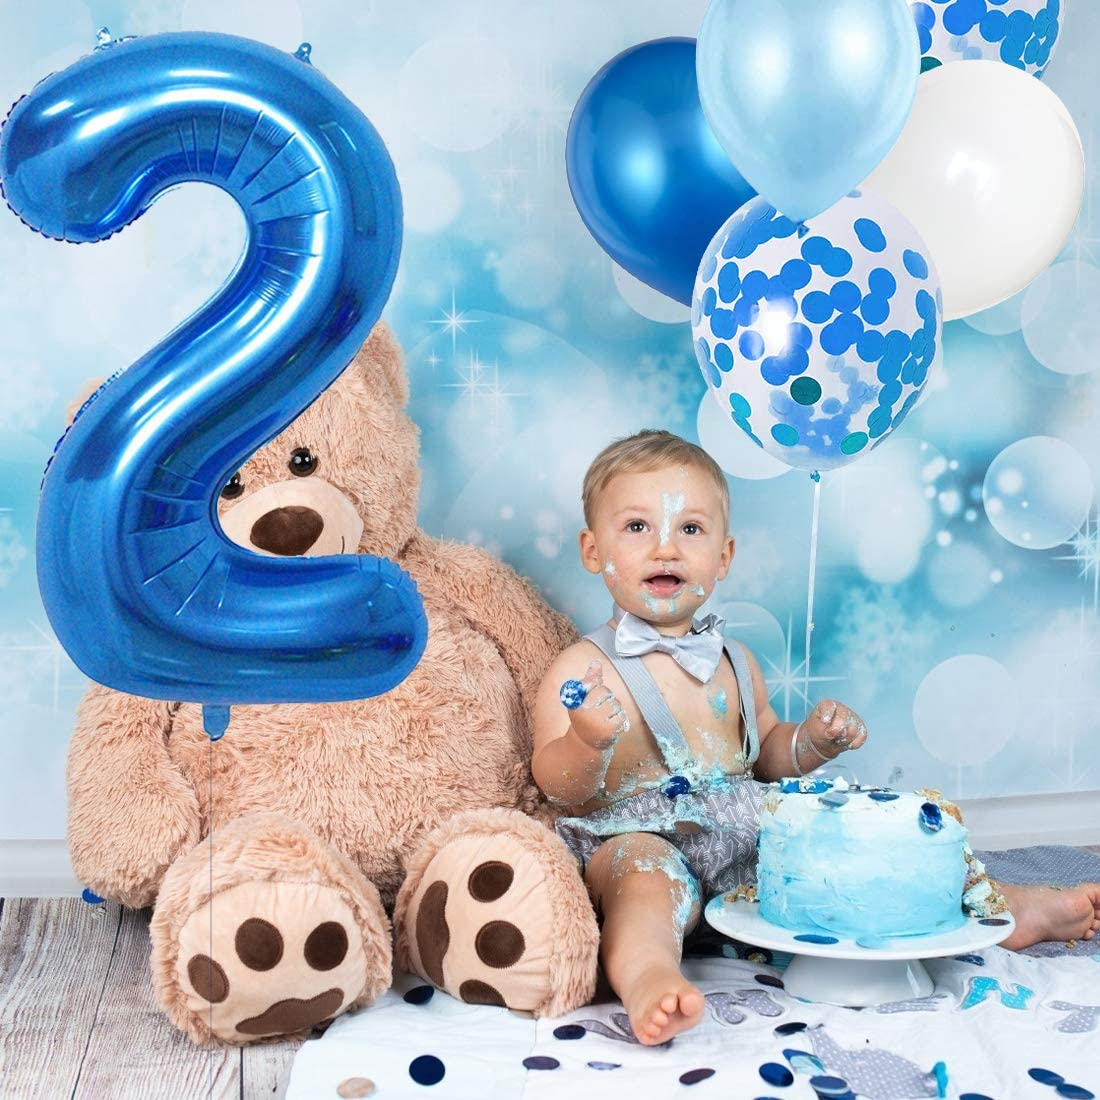 Happy Birthday Blue White Latex Confetti Foil Balloons for Party Supplies Baby 0 Birthday Party Blue Kit Set Baby Boy Birthday Decorations 0 Great Baby Shower